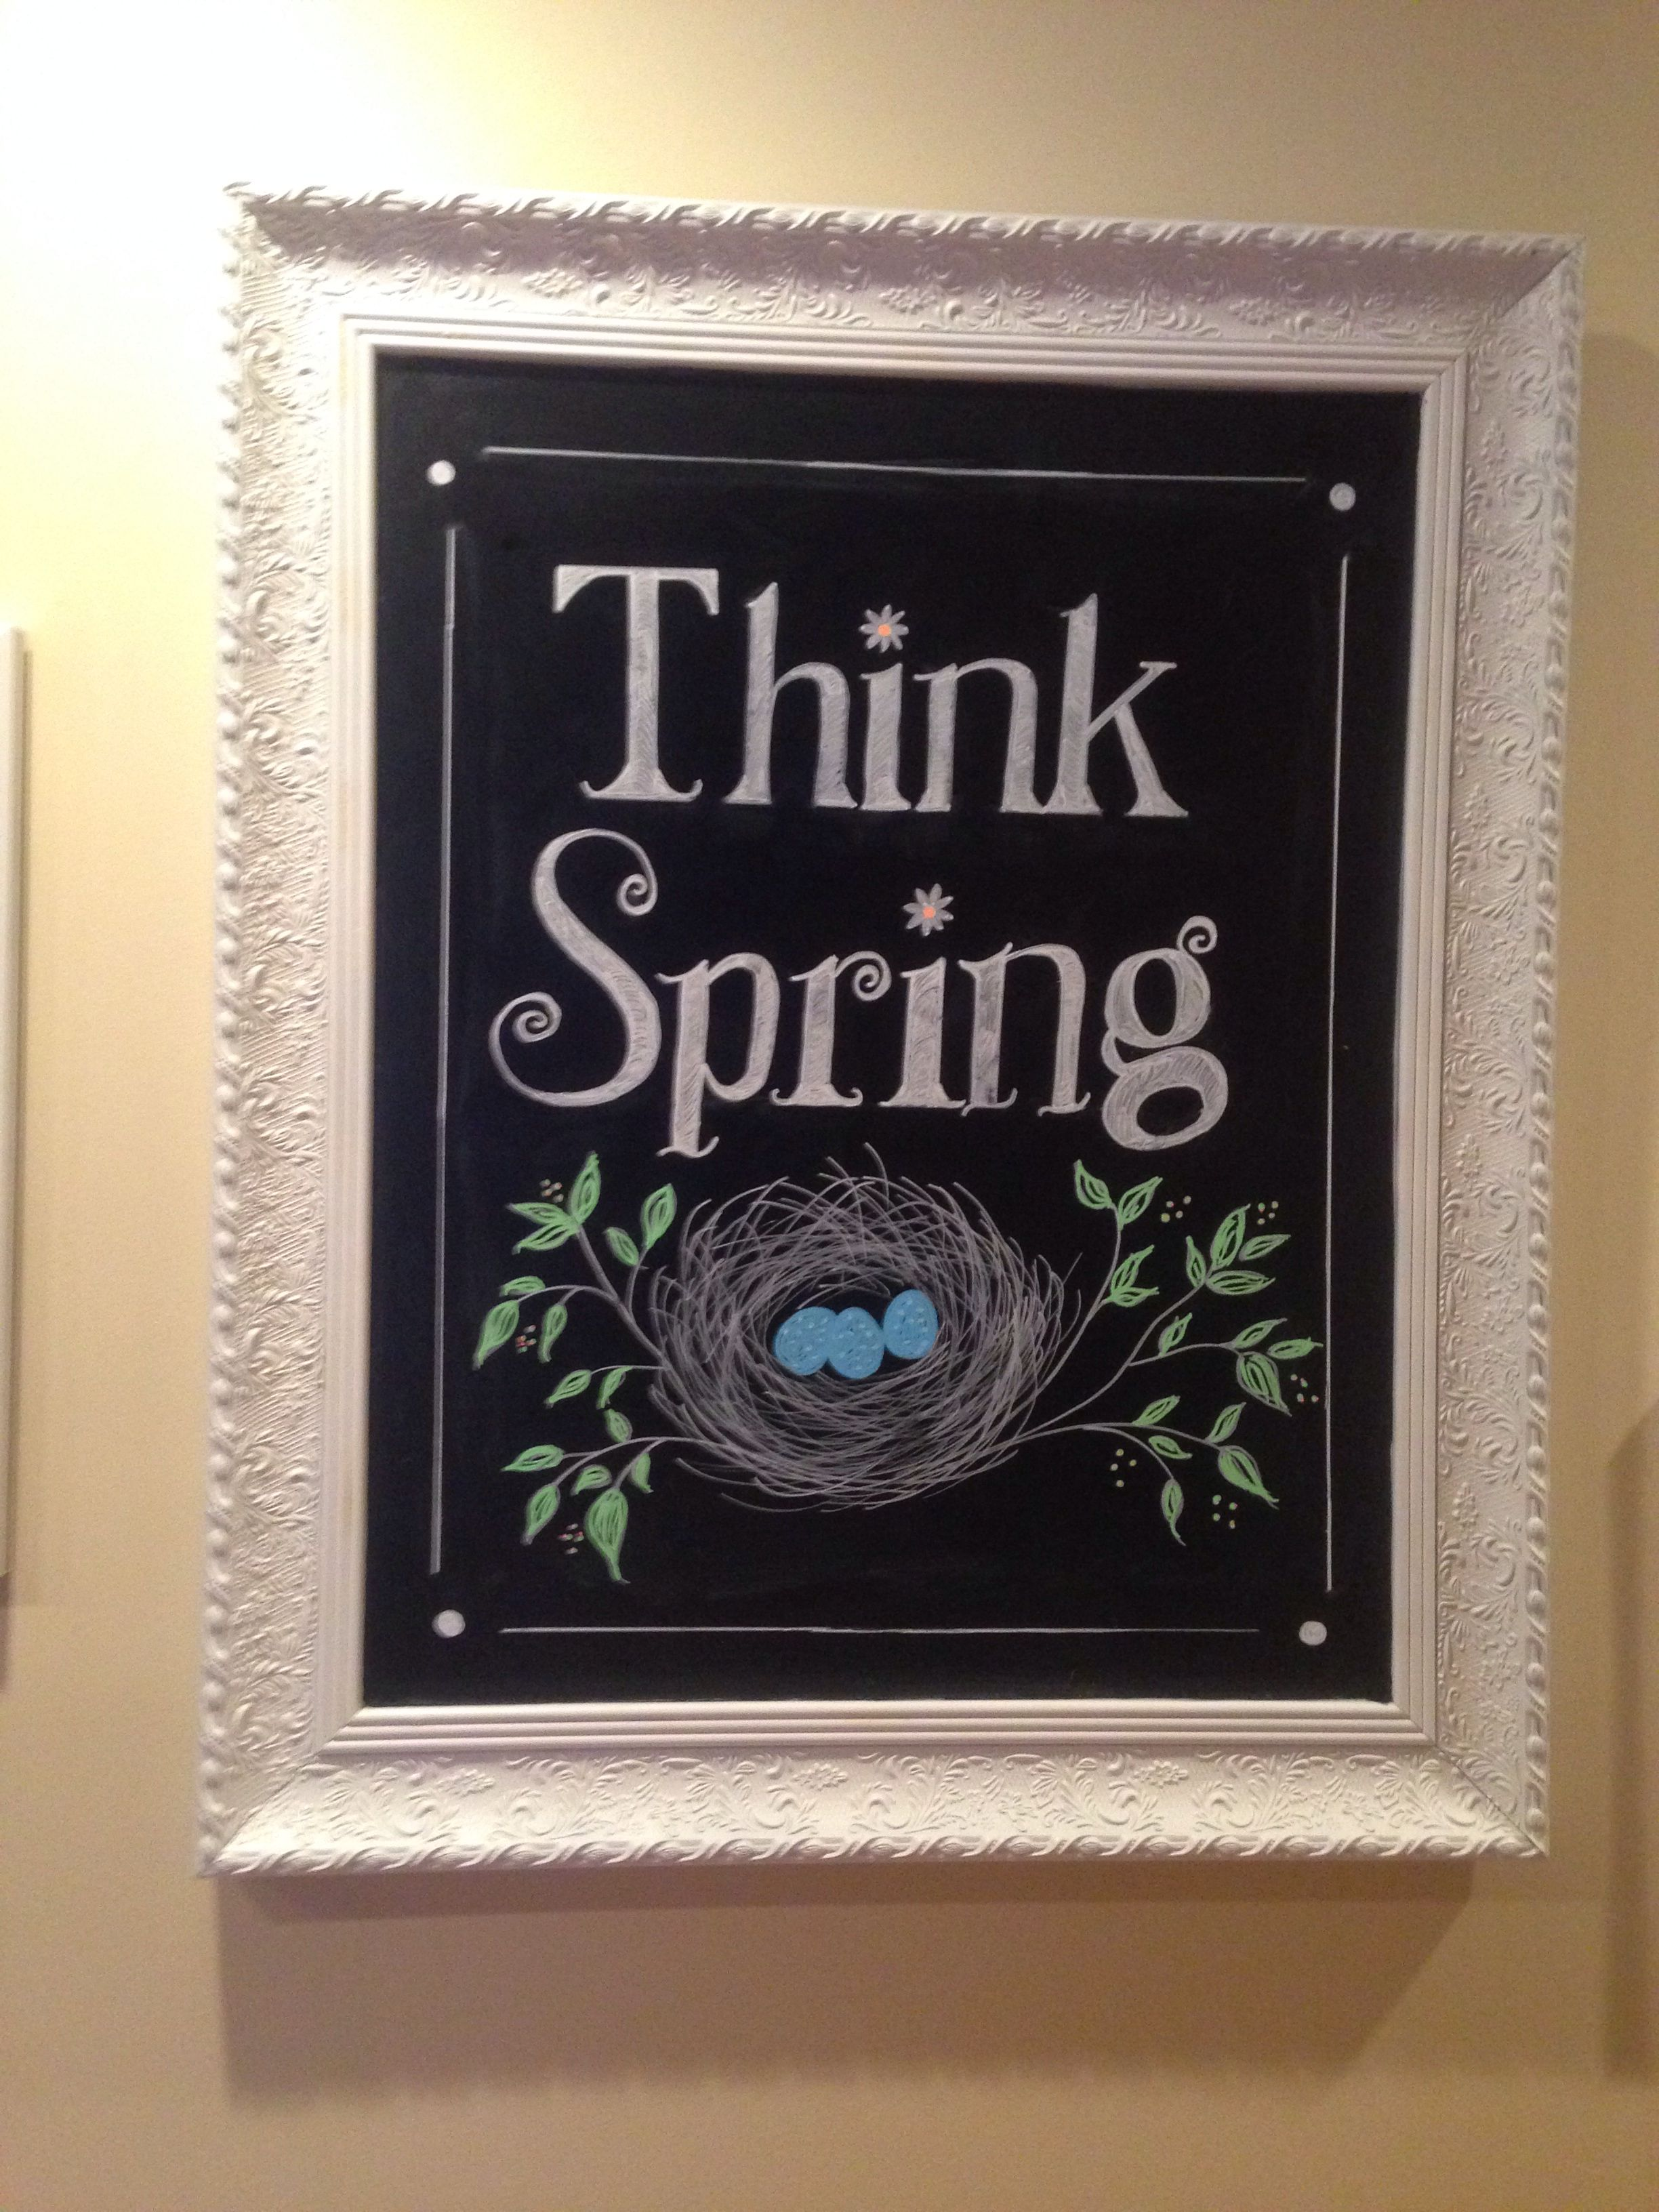 Pin By Linda Moriarty On Chalkboard Art Spring Chalkboard Art Spring Chalkboard Chalkboard Art